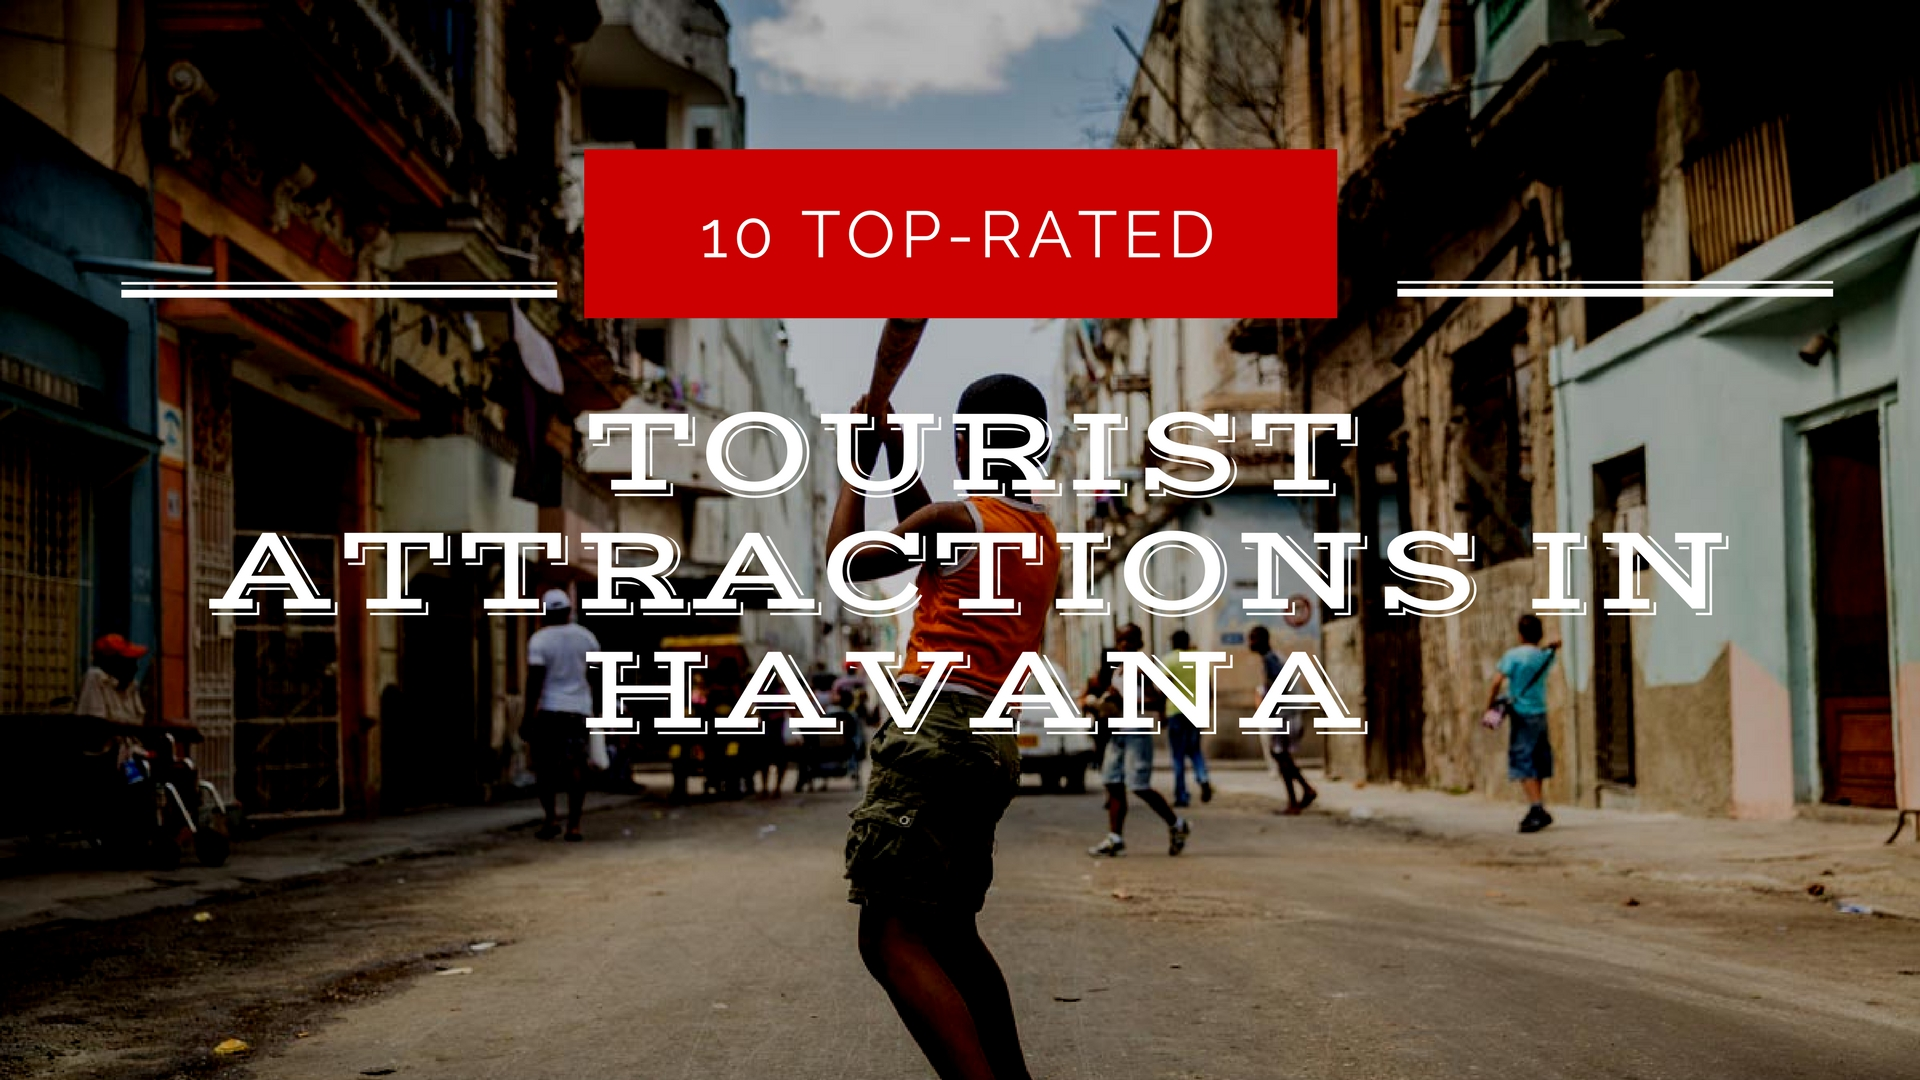 10 Top-Rated Tourist Attractions in Old Havana